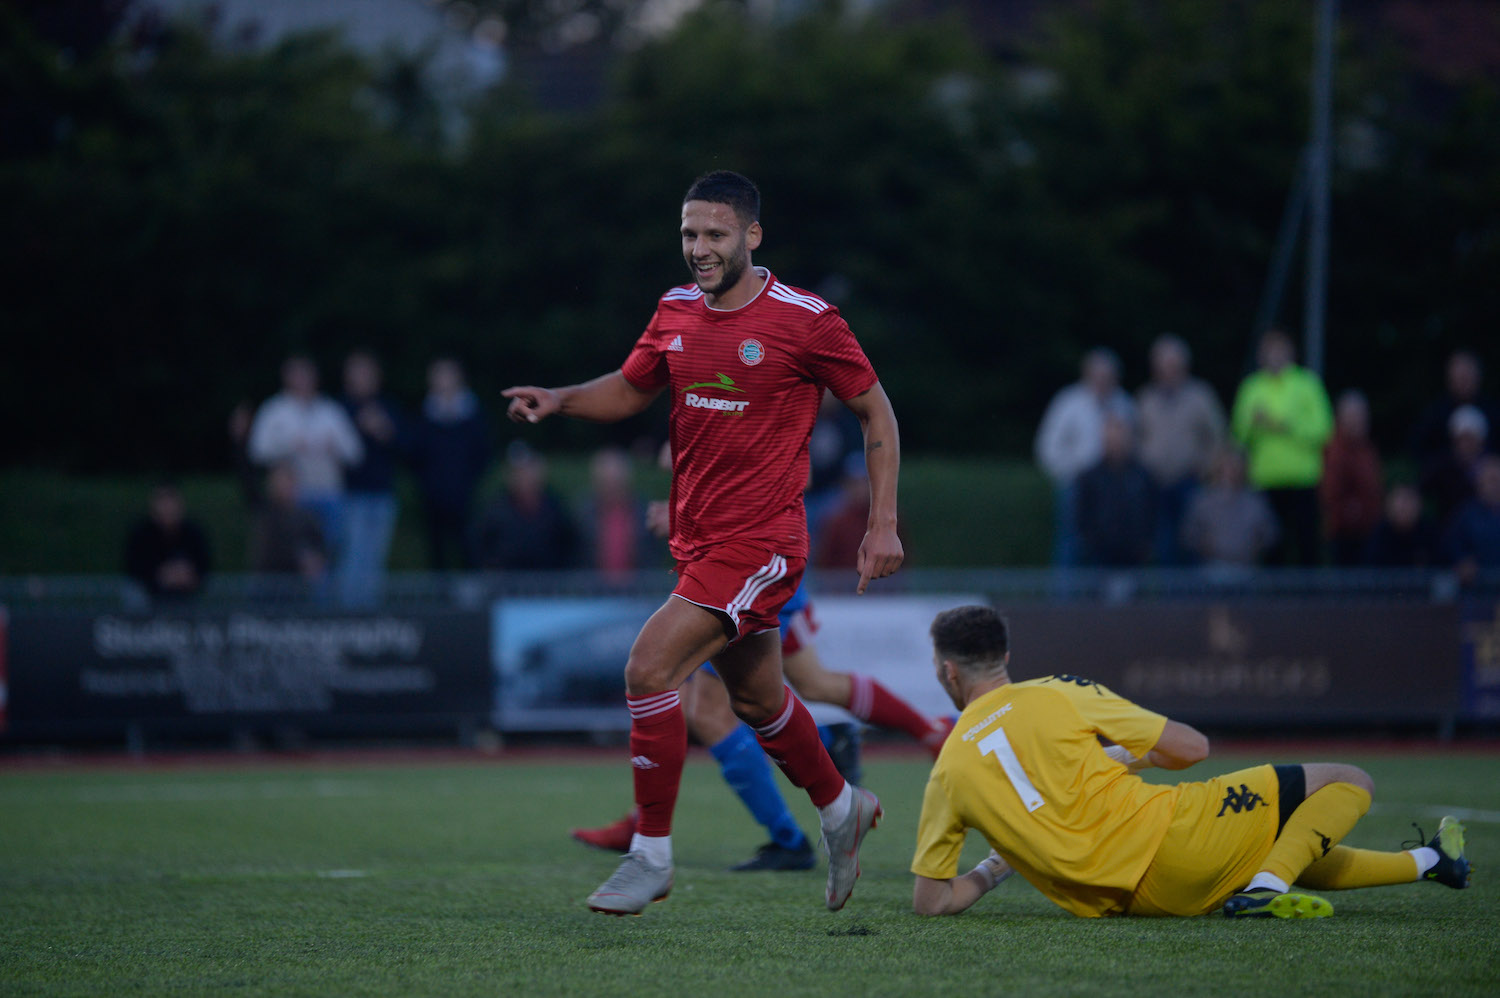 Read the full article - HGHILIGHTS | 19/20: Lewes [H] – League